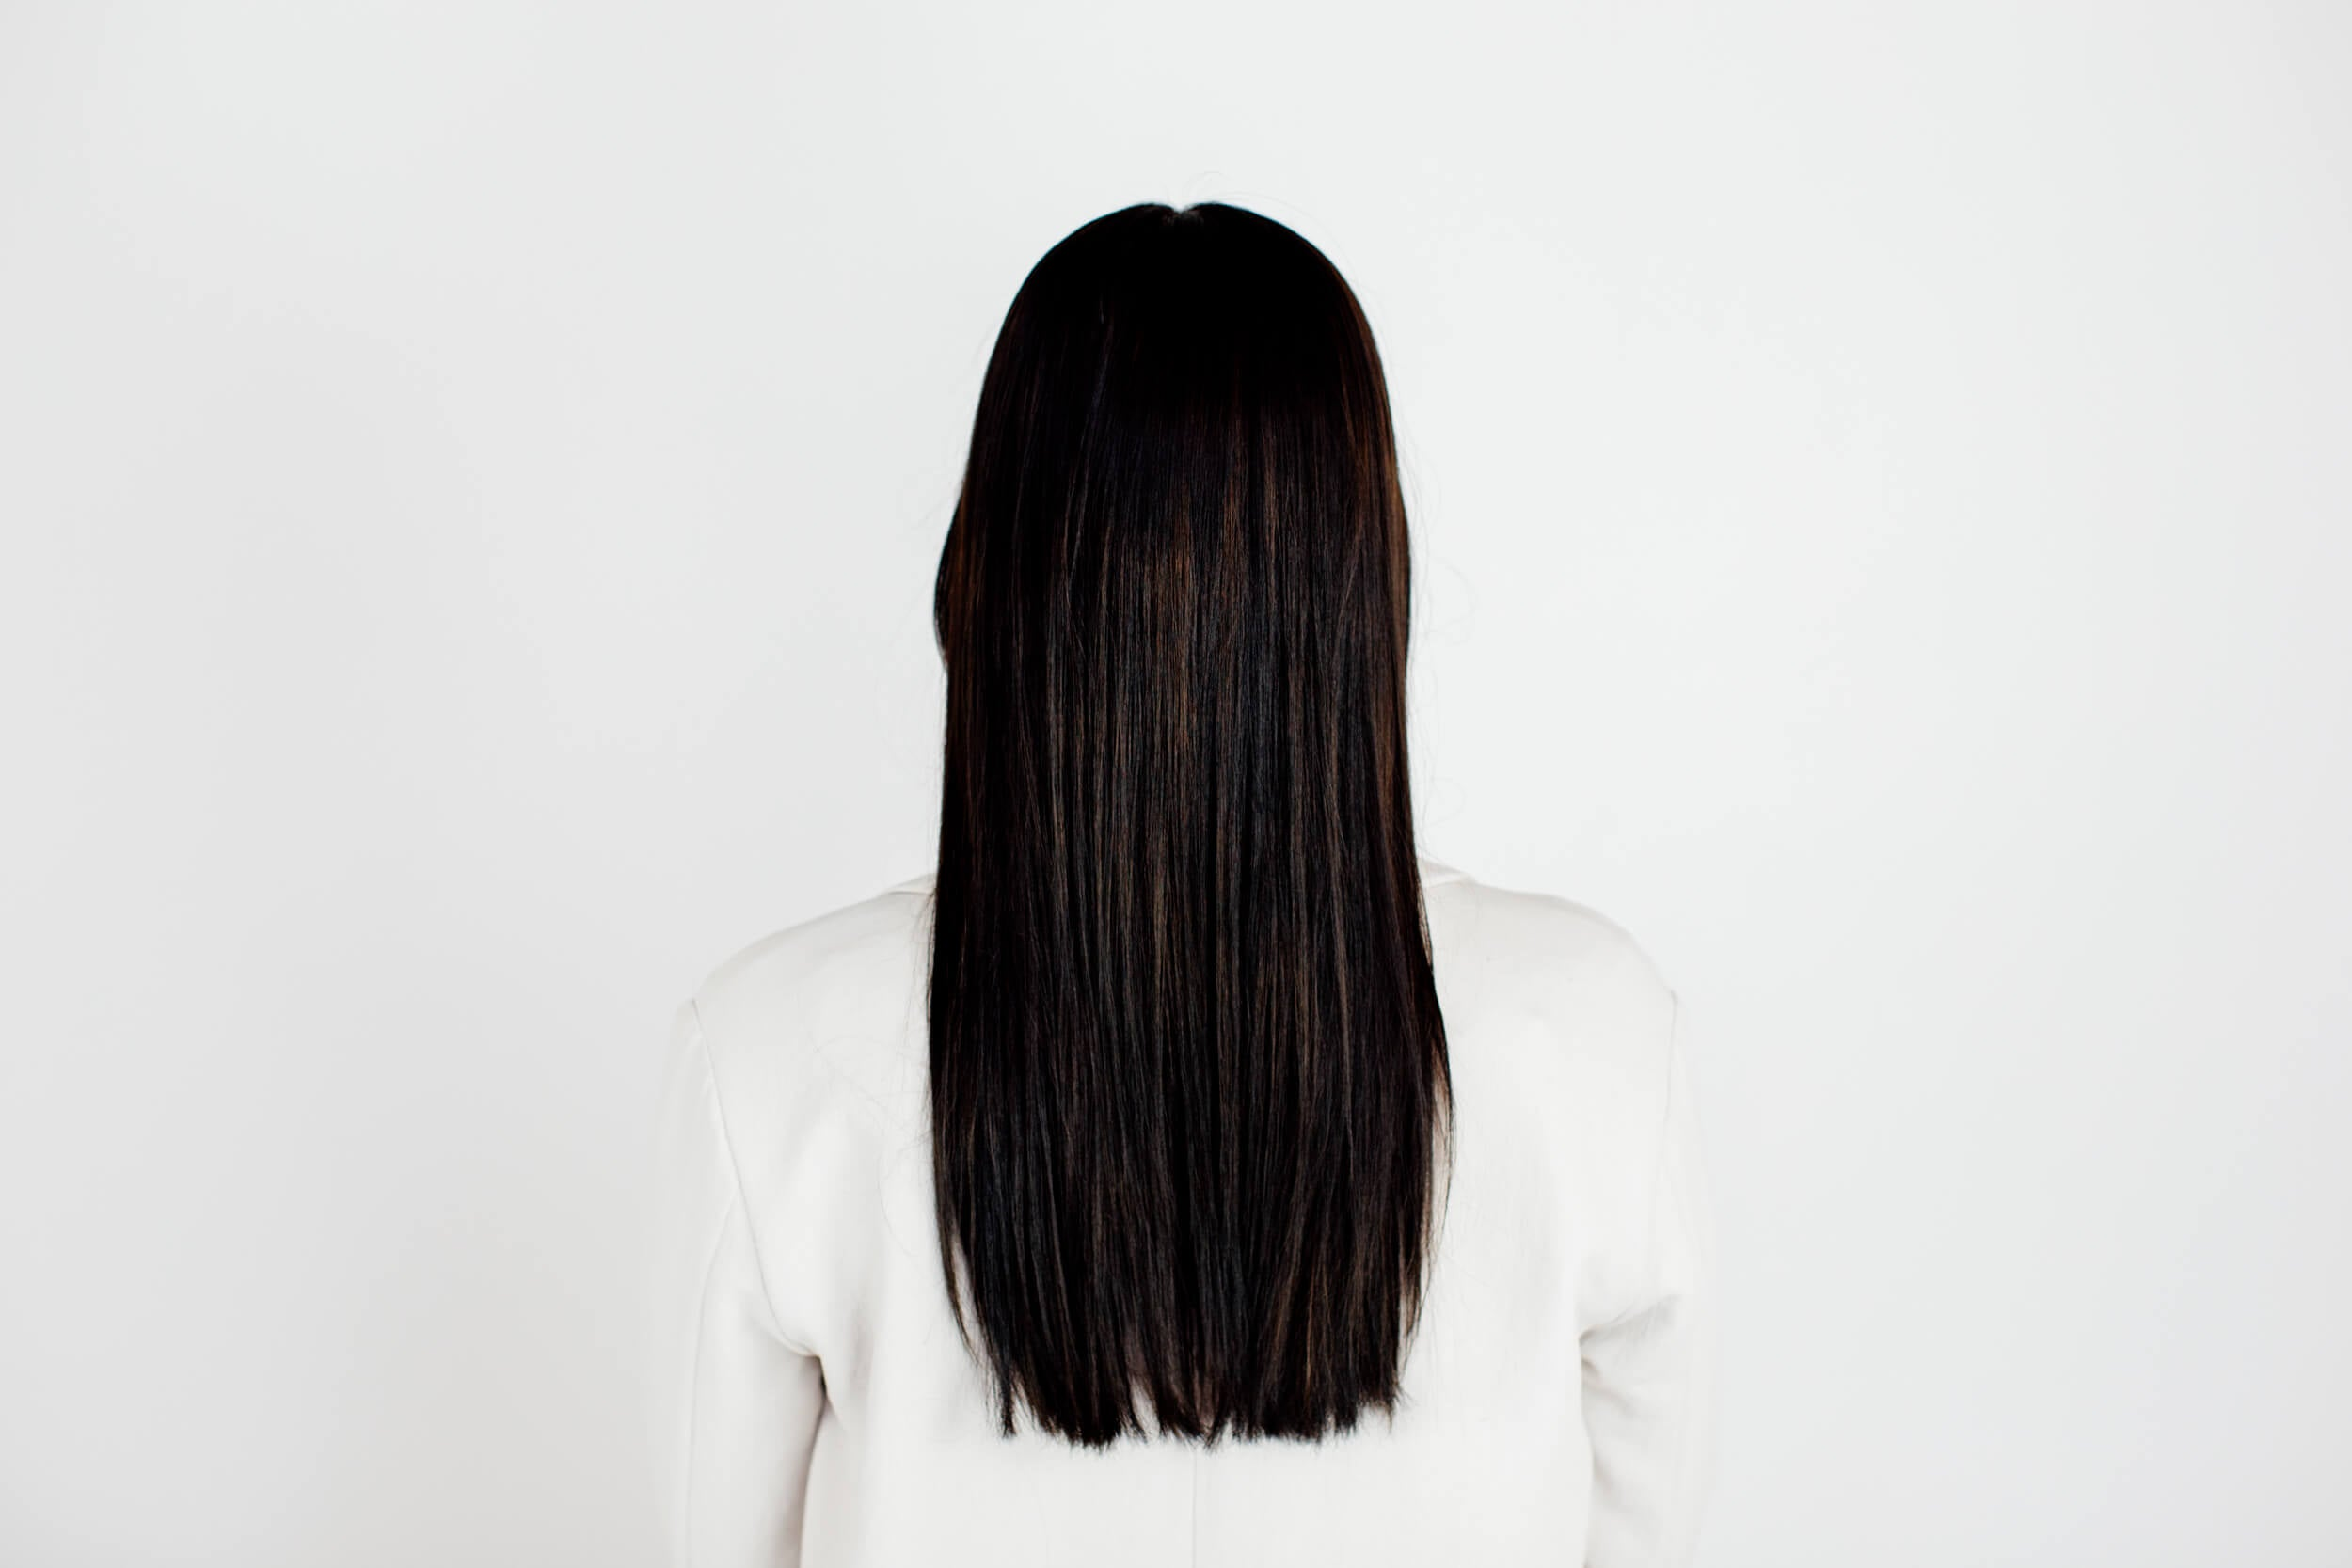 A woman with straight black hair as seen from the back.